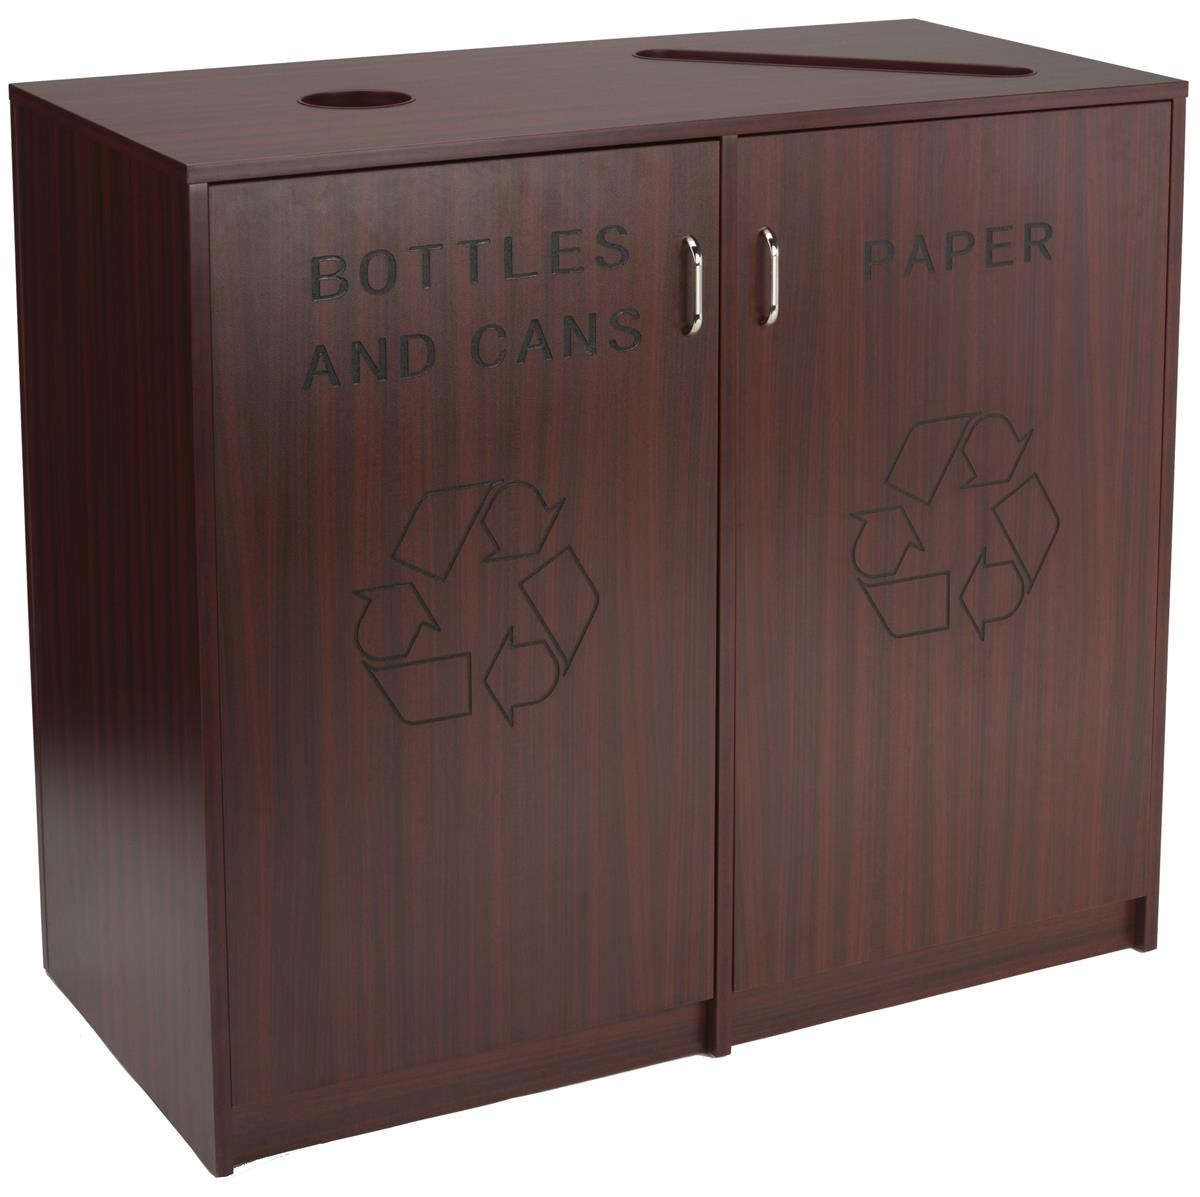 Recycling Office Bins Can Hold 2 36 Gallon Liners